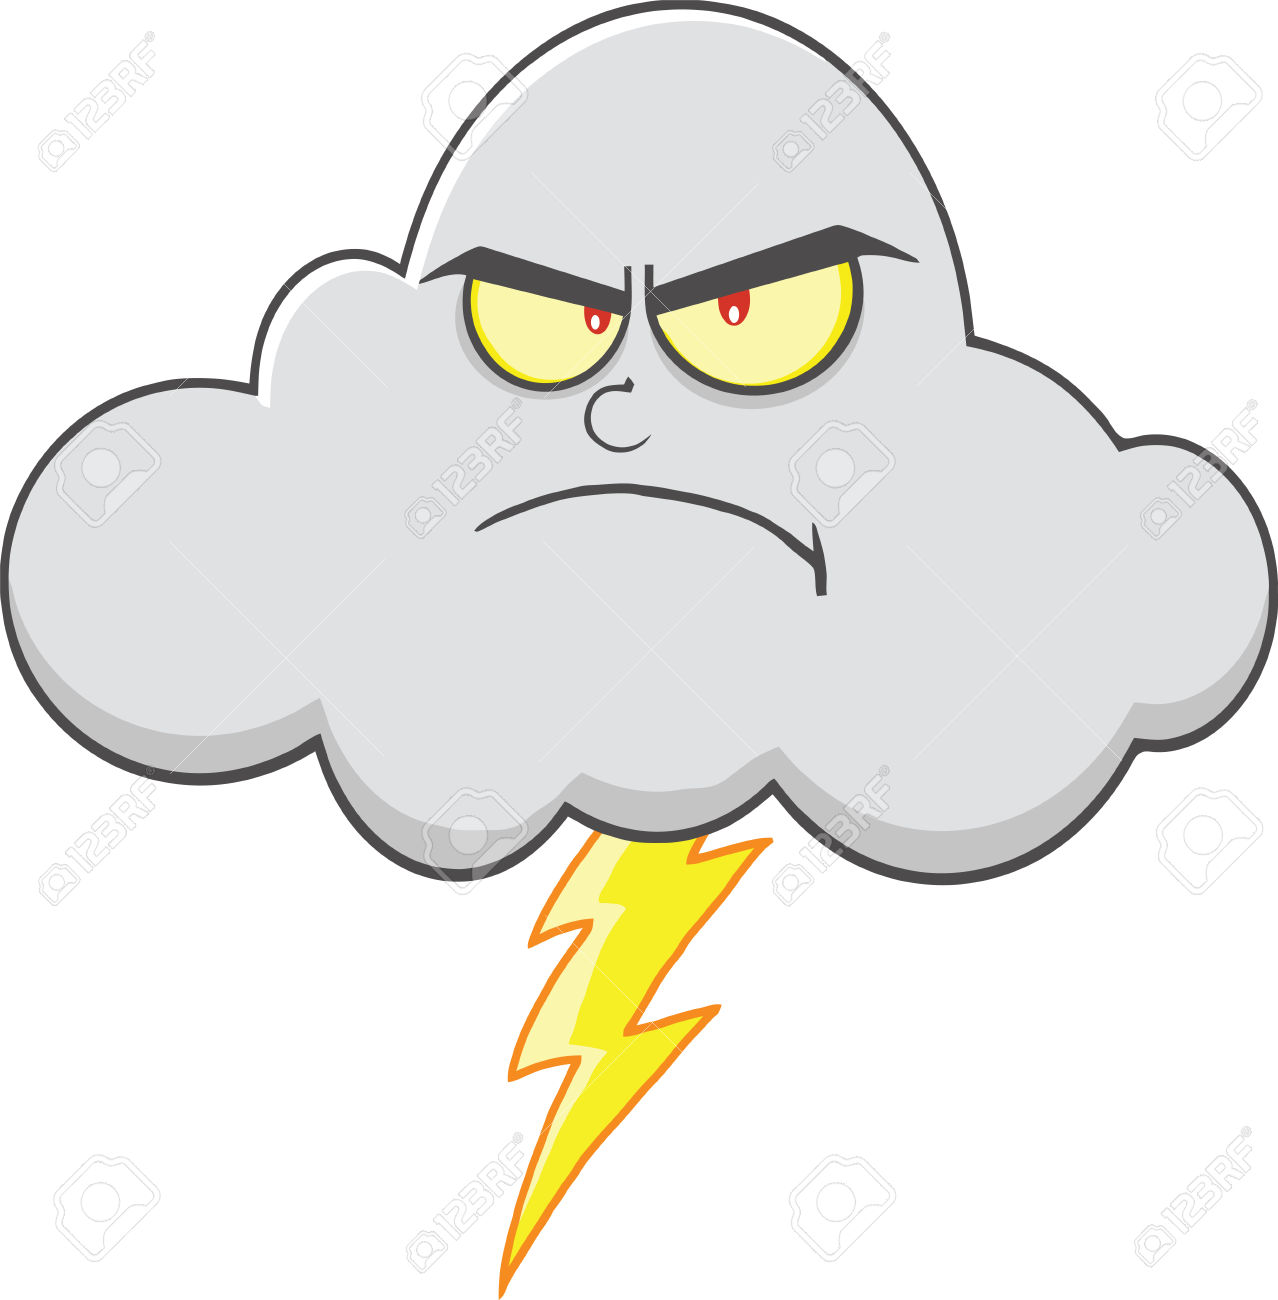 Anger clipart smoke Cliparts Cloud Lightning Angry Clipart